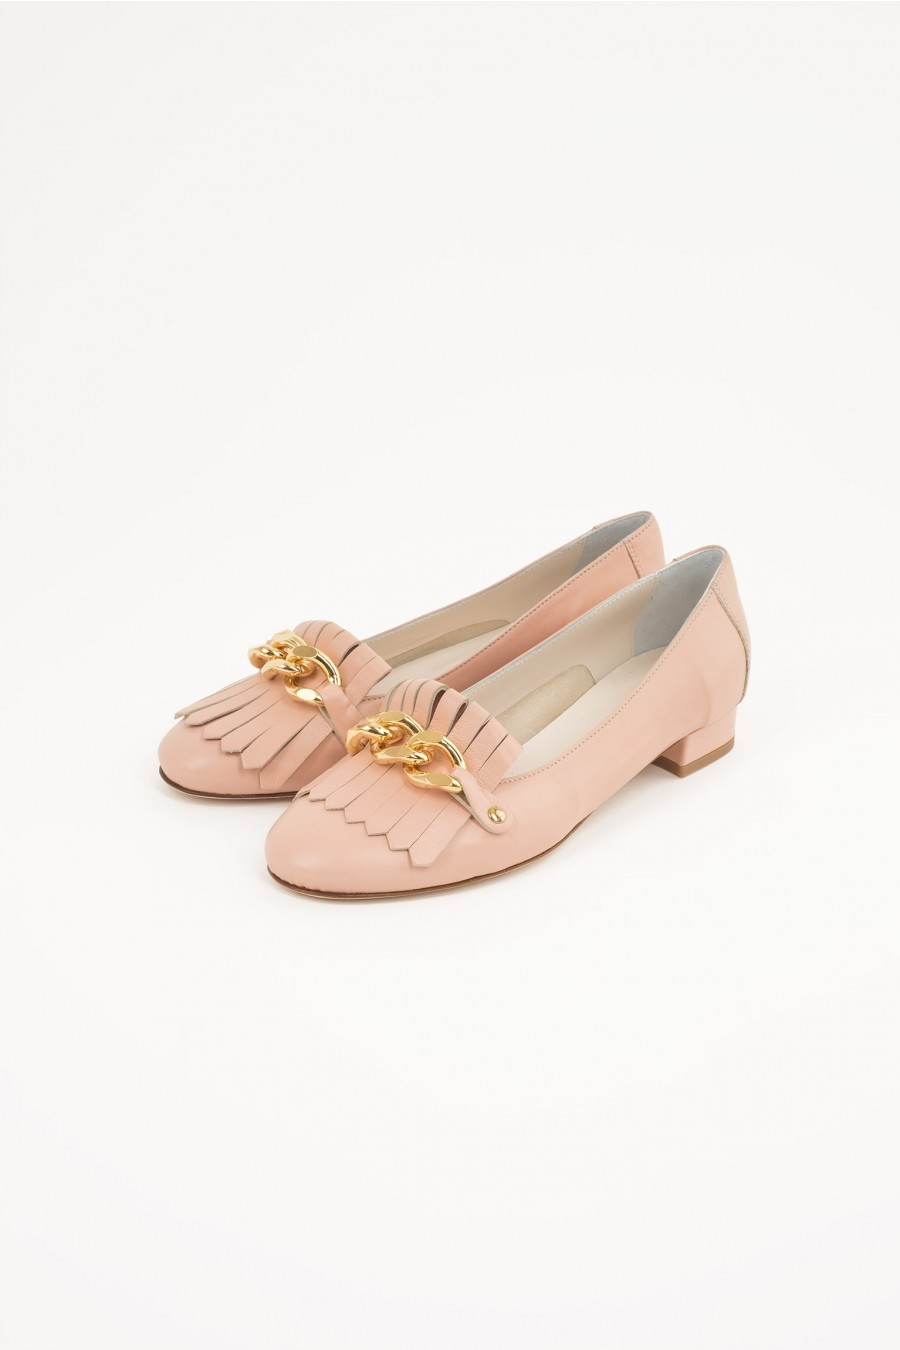 frienged flat shoes pale pink